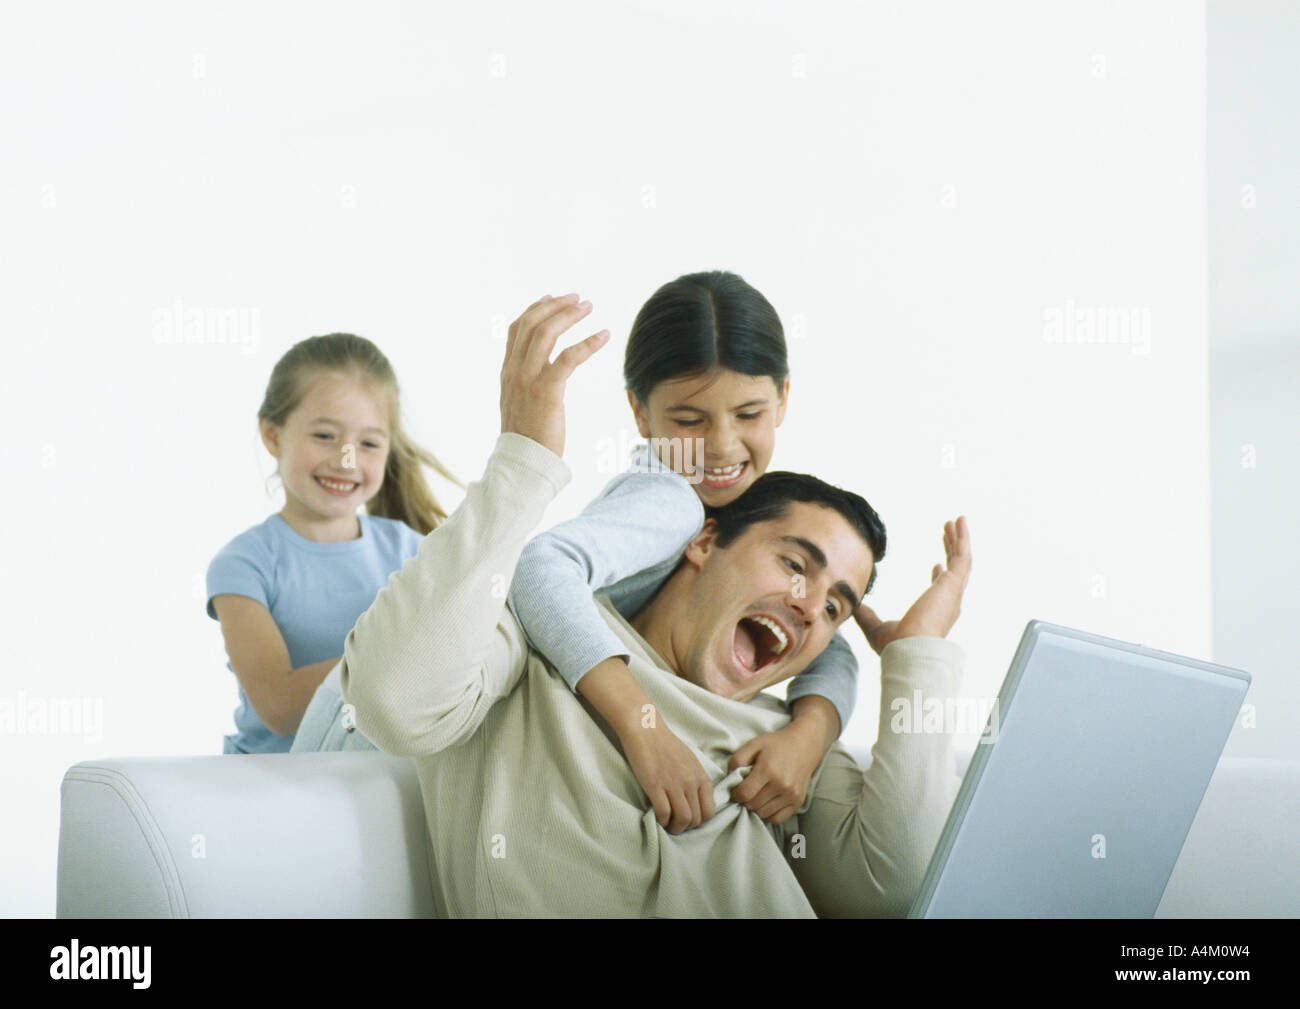 Two girls behind man sitting with laptop, one with arms around him - Stock Image